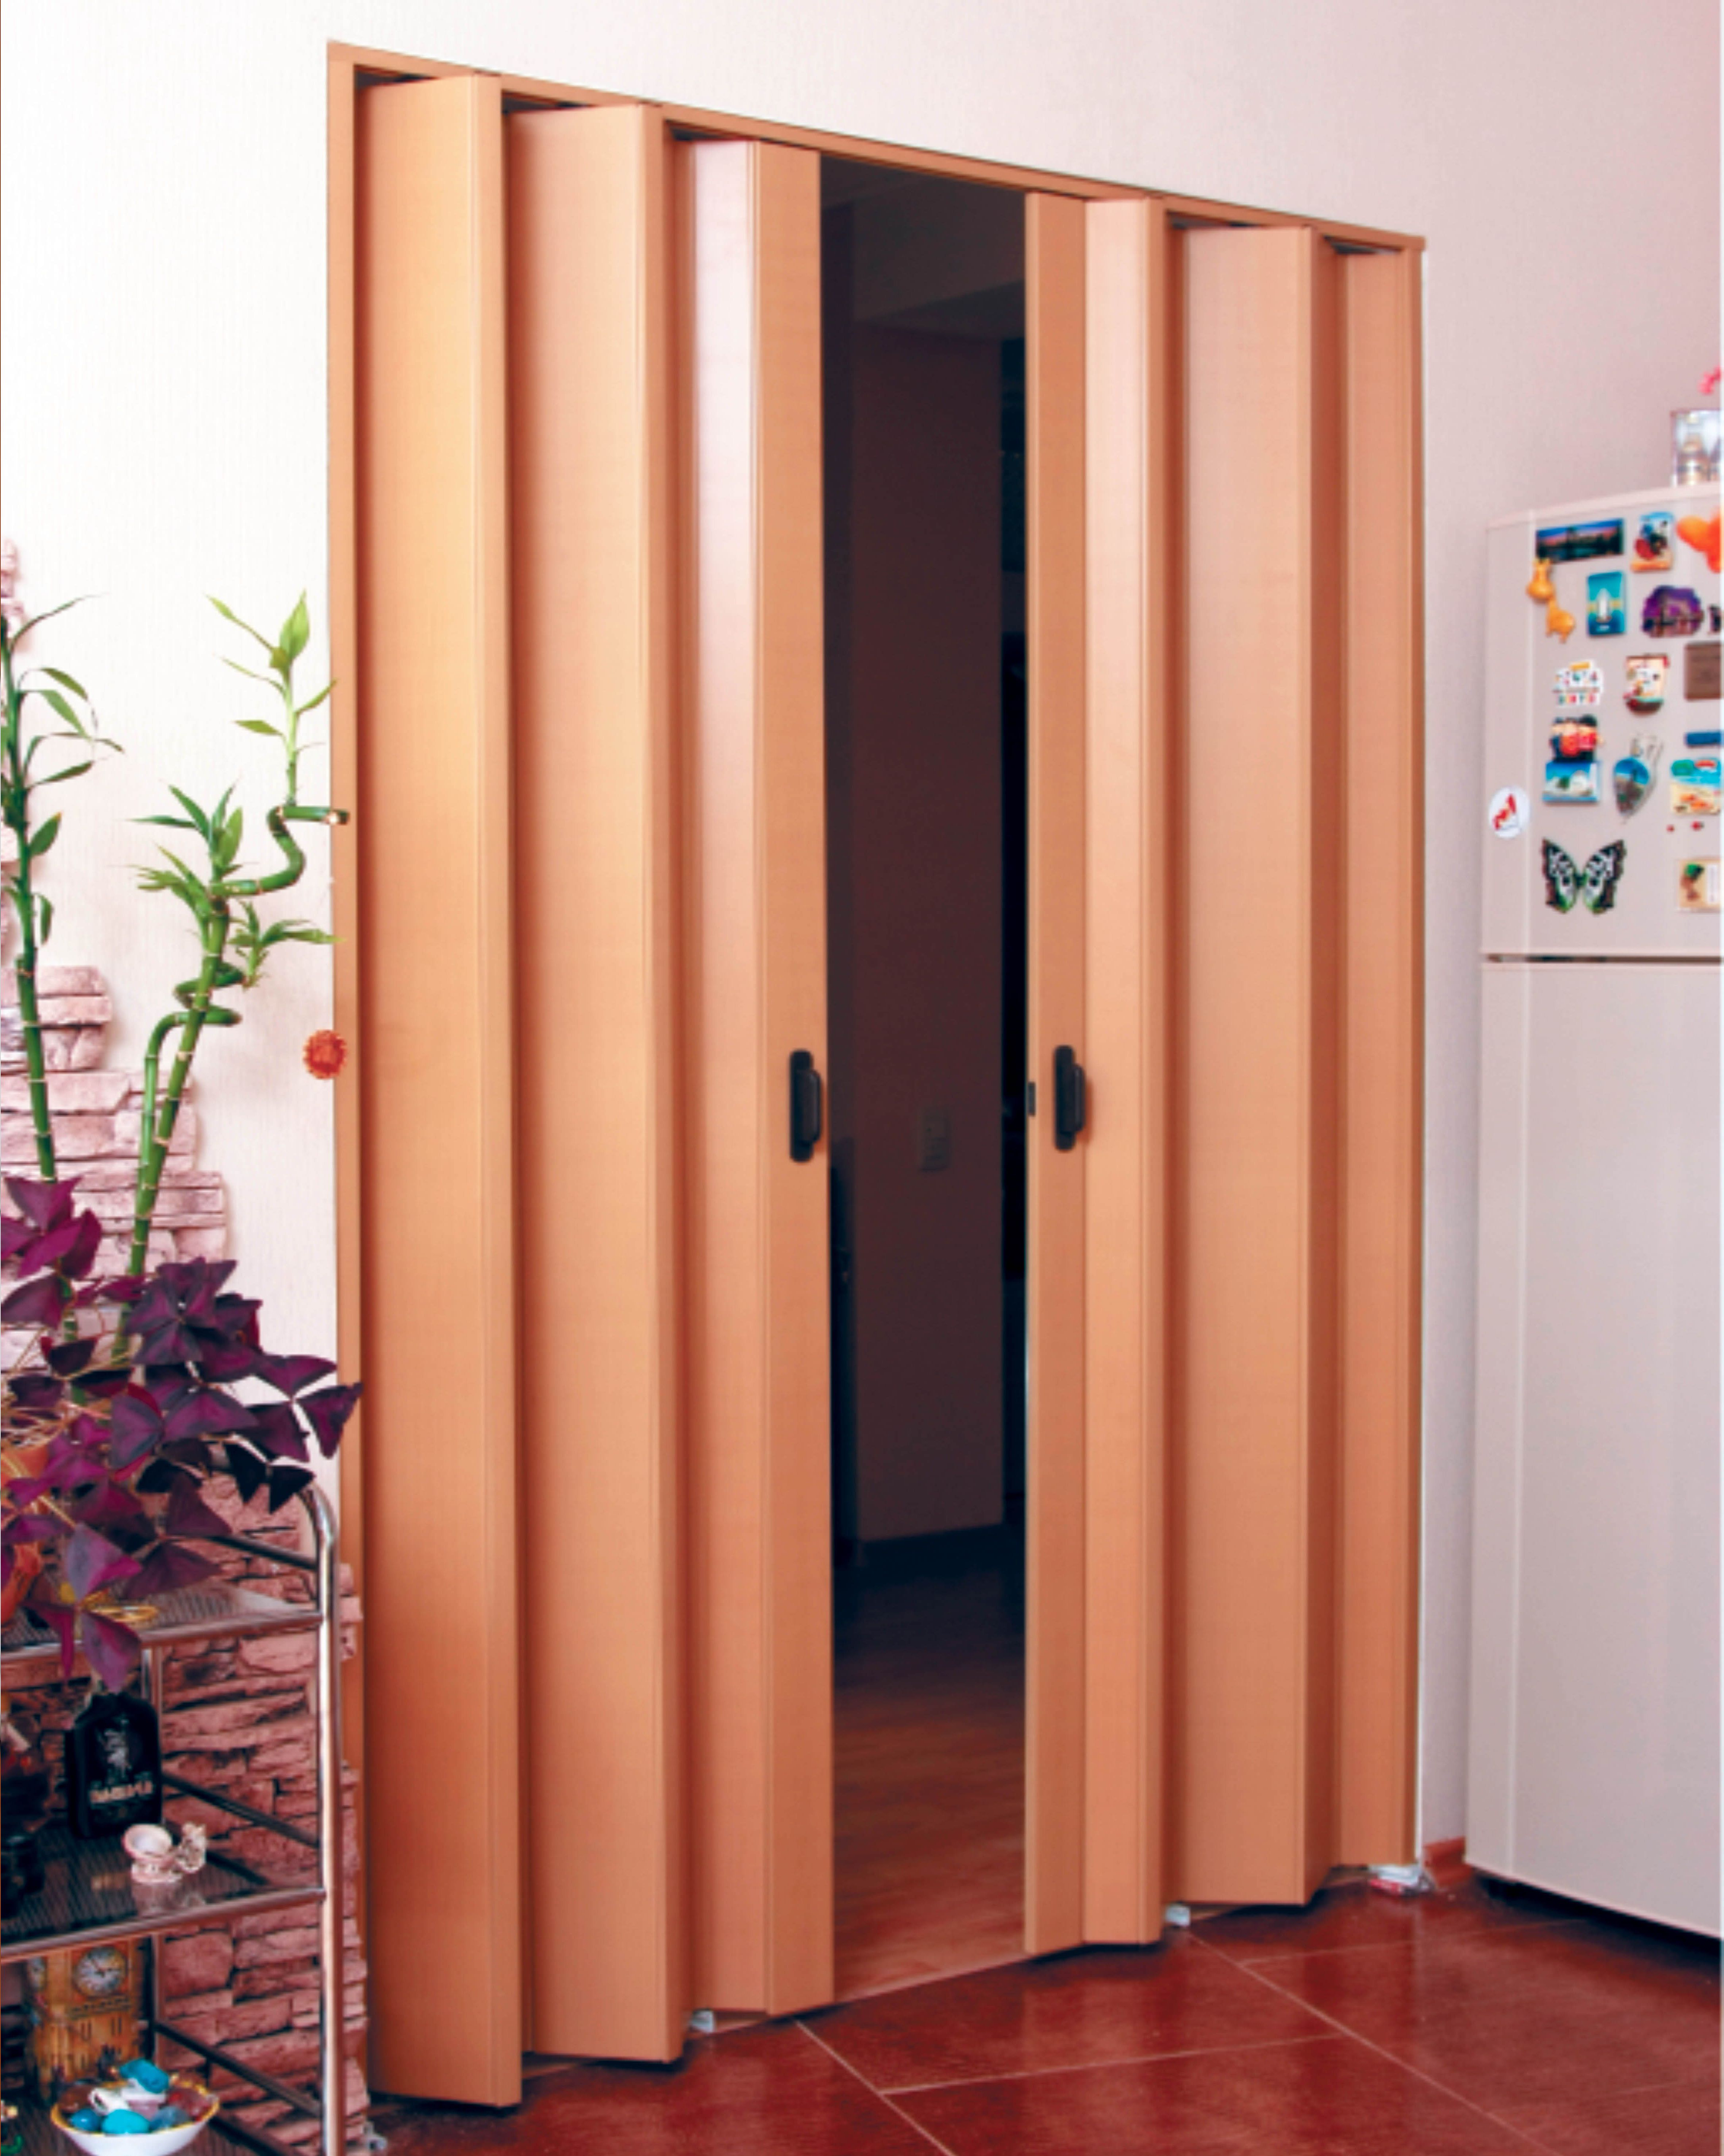 Plastic folding doors